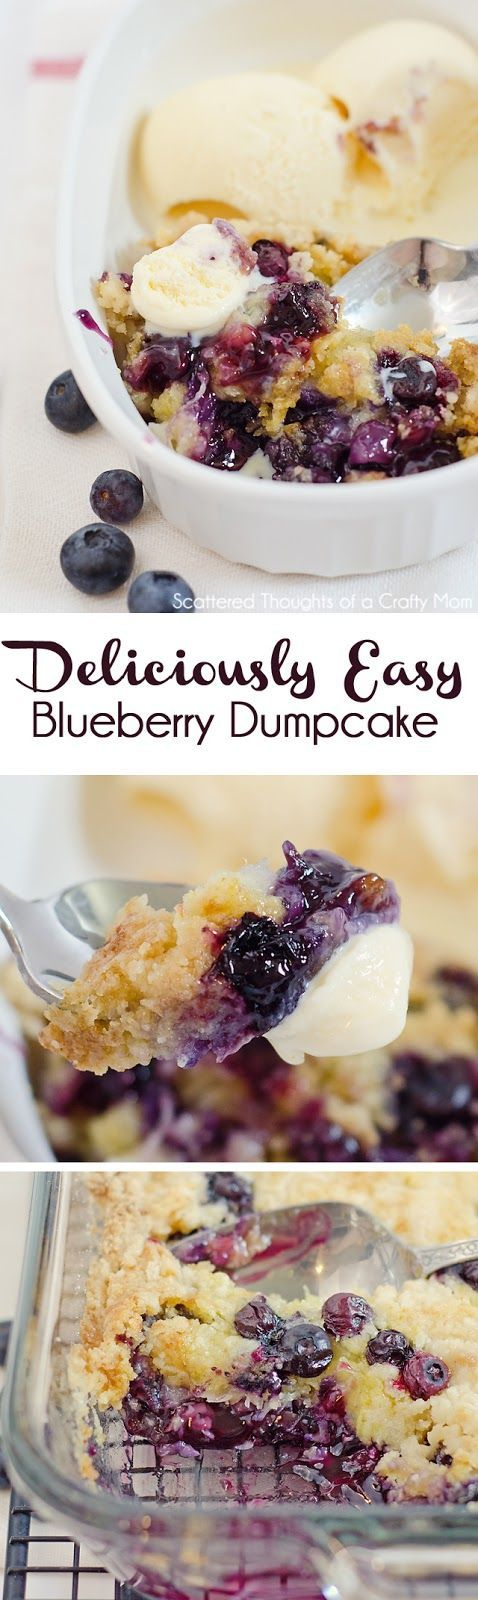 online shopping of clothing with discount The Most Delicious Blueberry Dump Cake Ever Blueberry Dump Cakes Dump Cakes and Dump Cake Recipes